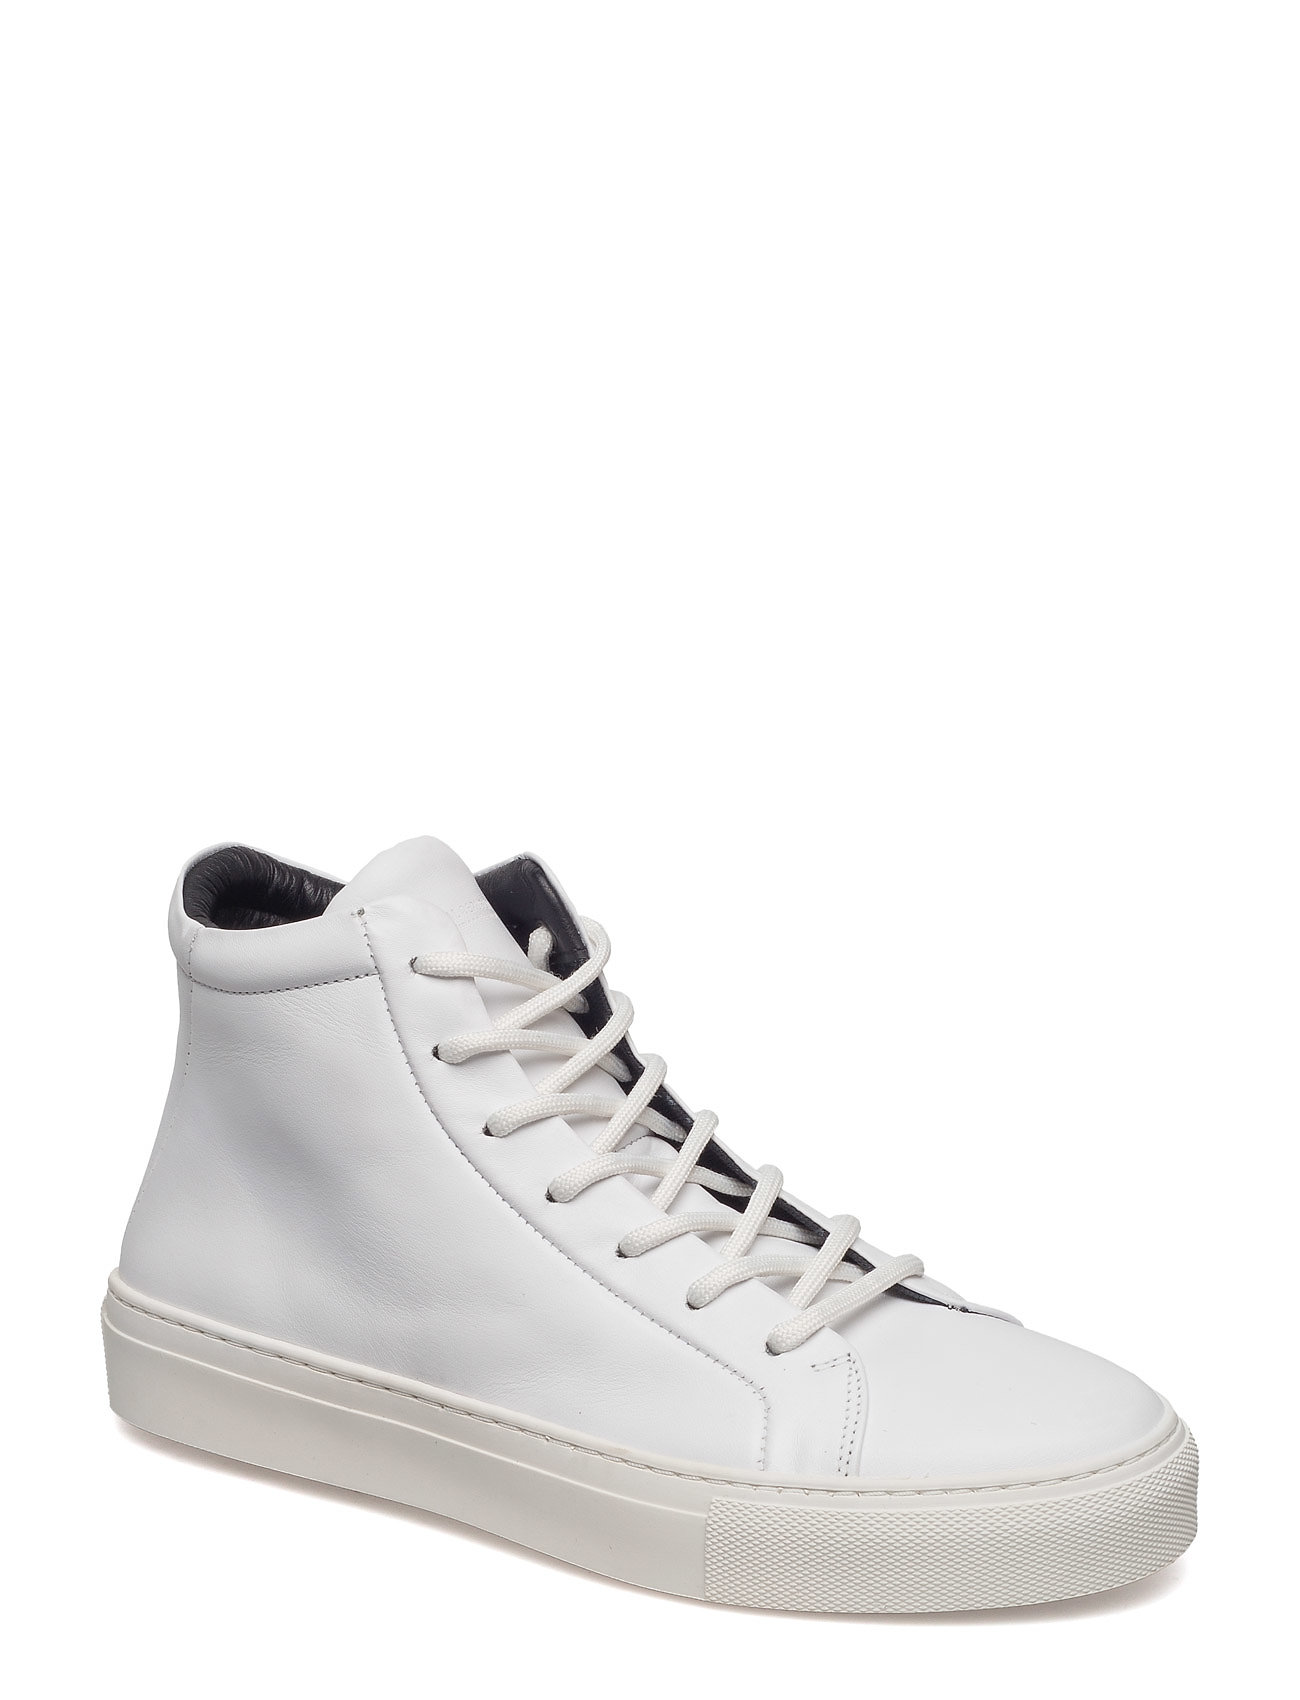 Elpique Base Low Cut Royal RepubliQ Sneakers til Damer i hvid